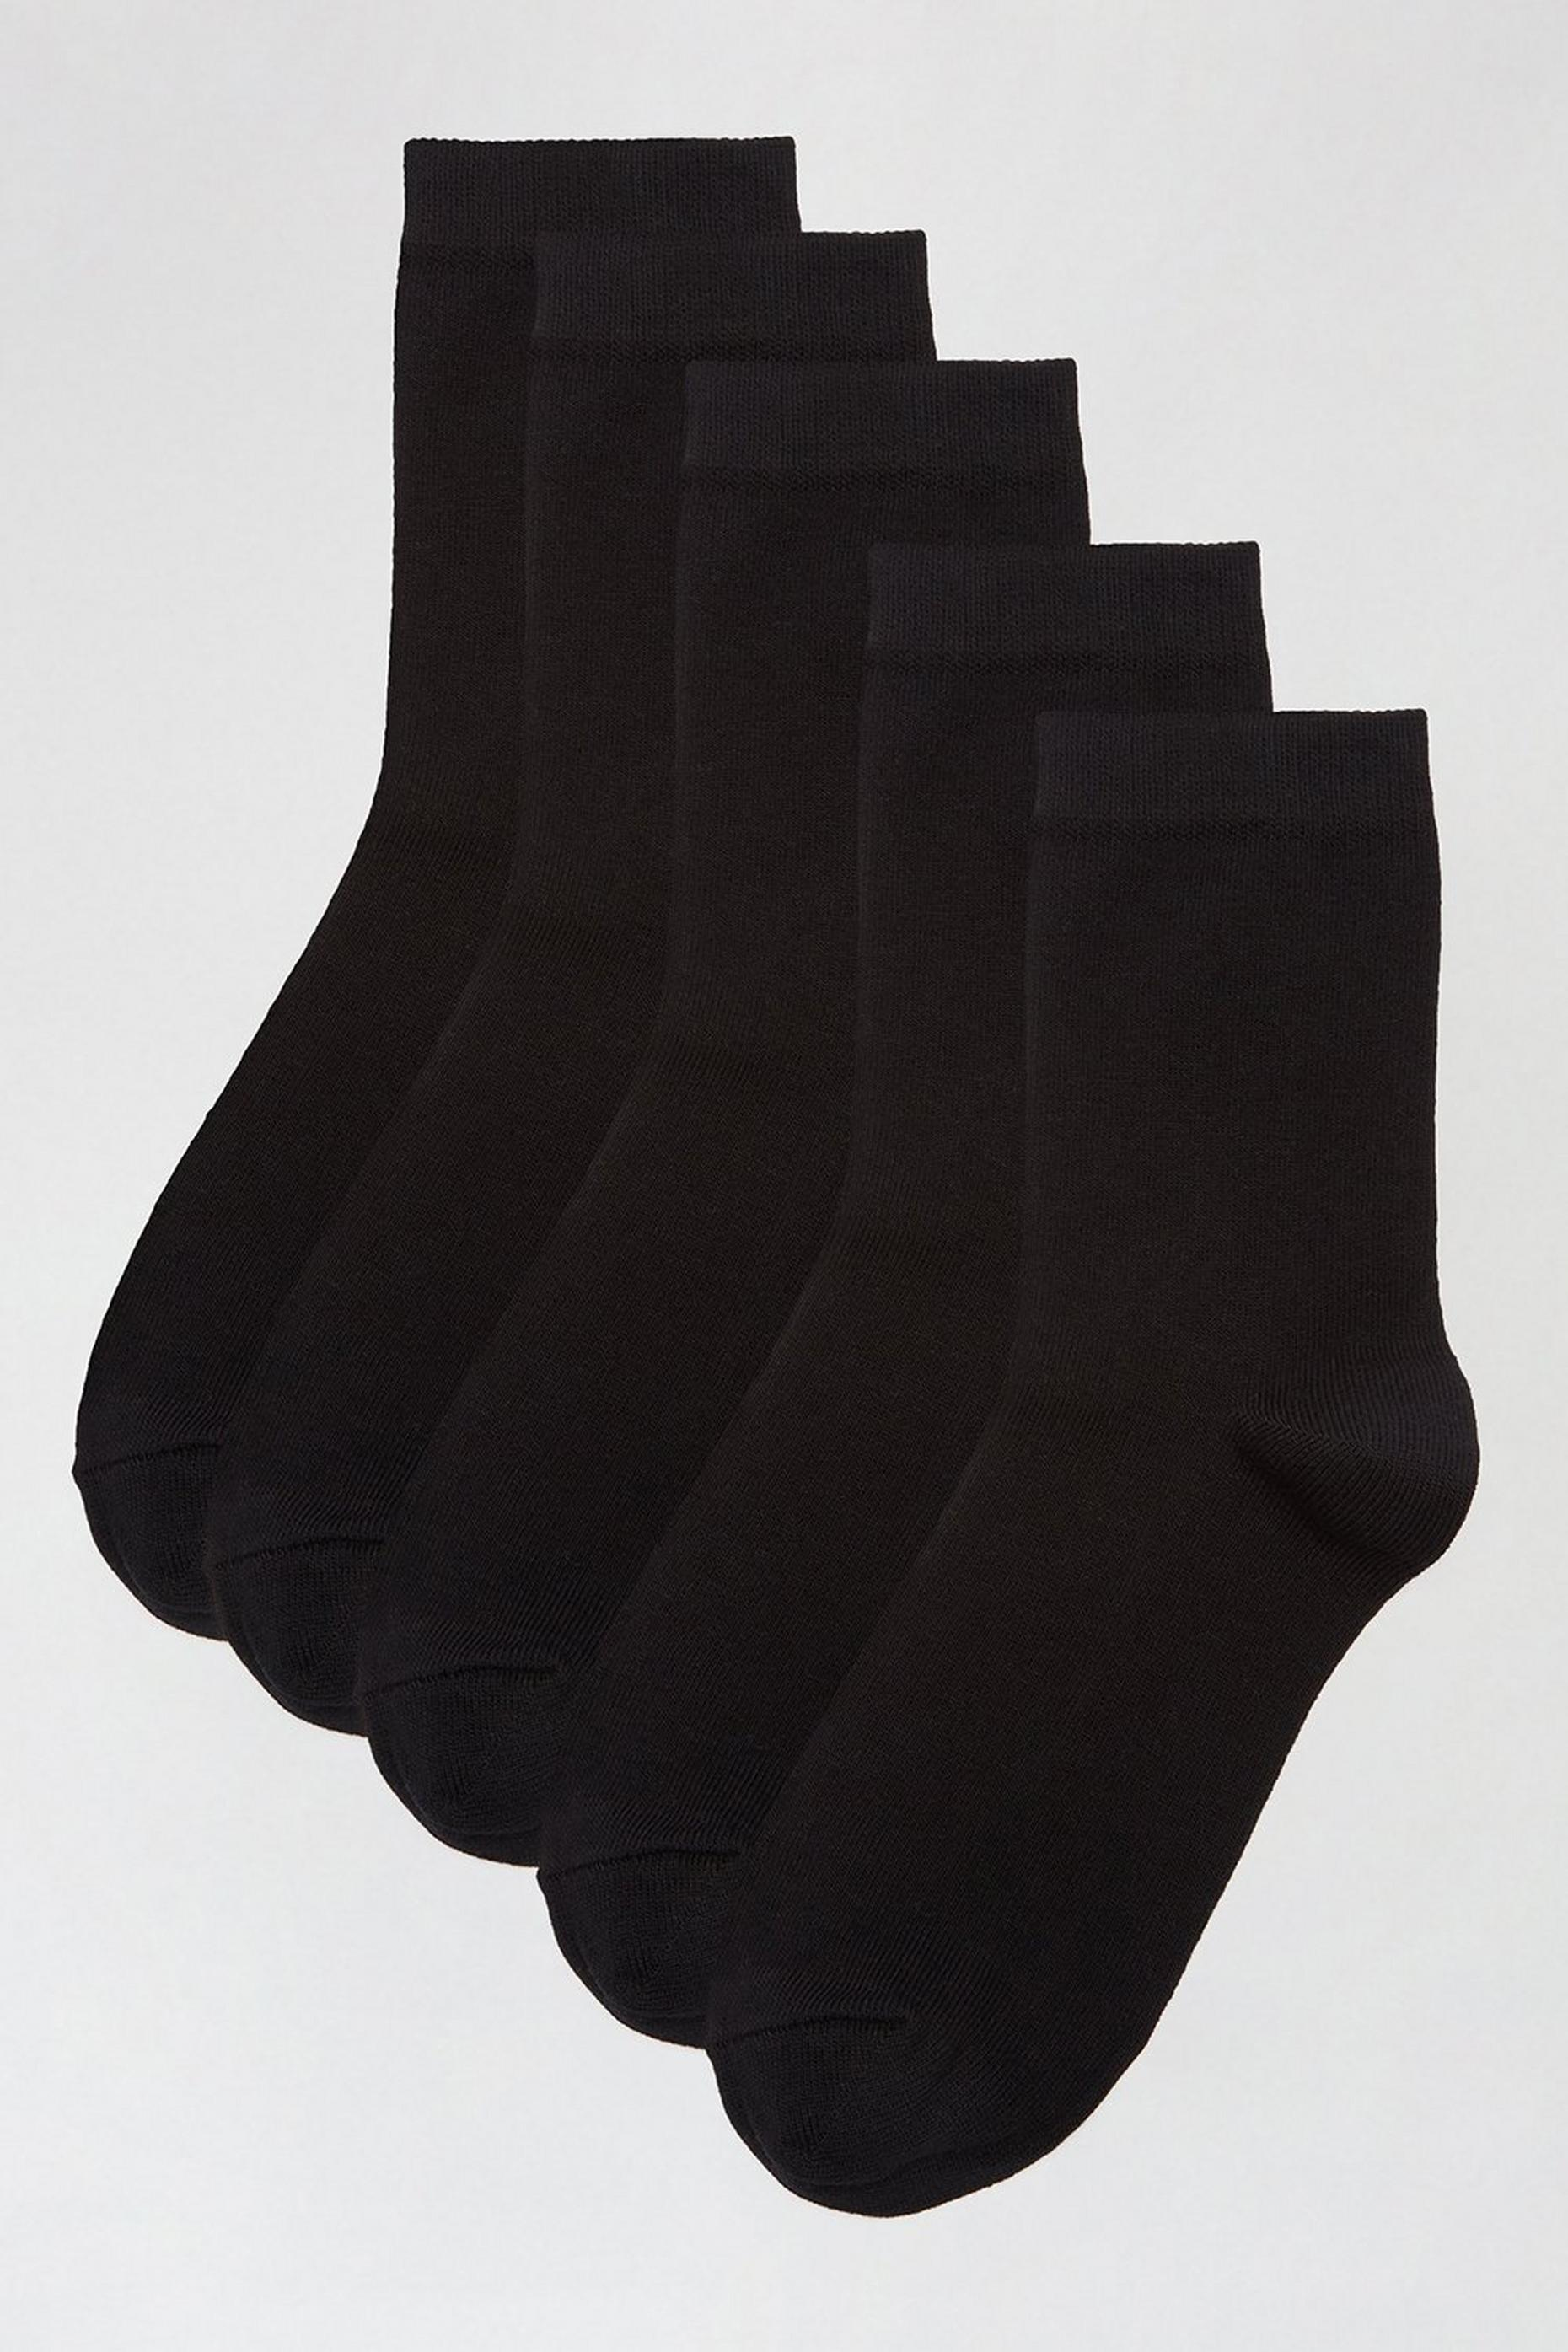 5 Pack Black Plain Ankle Socks